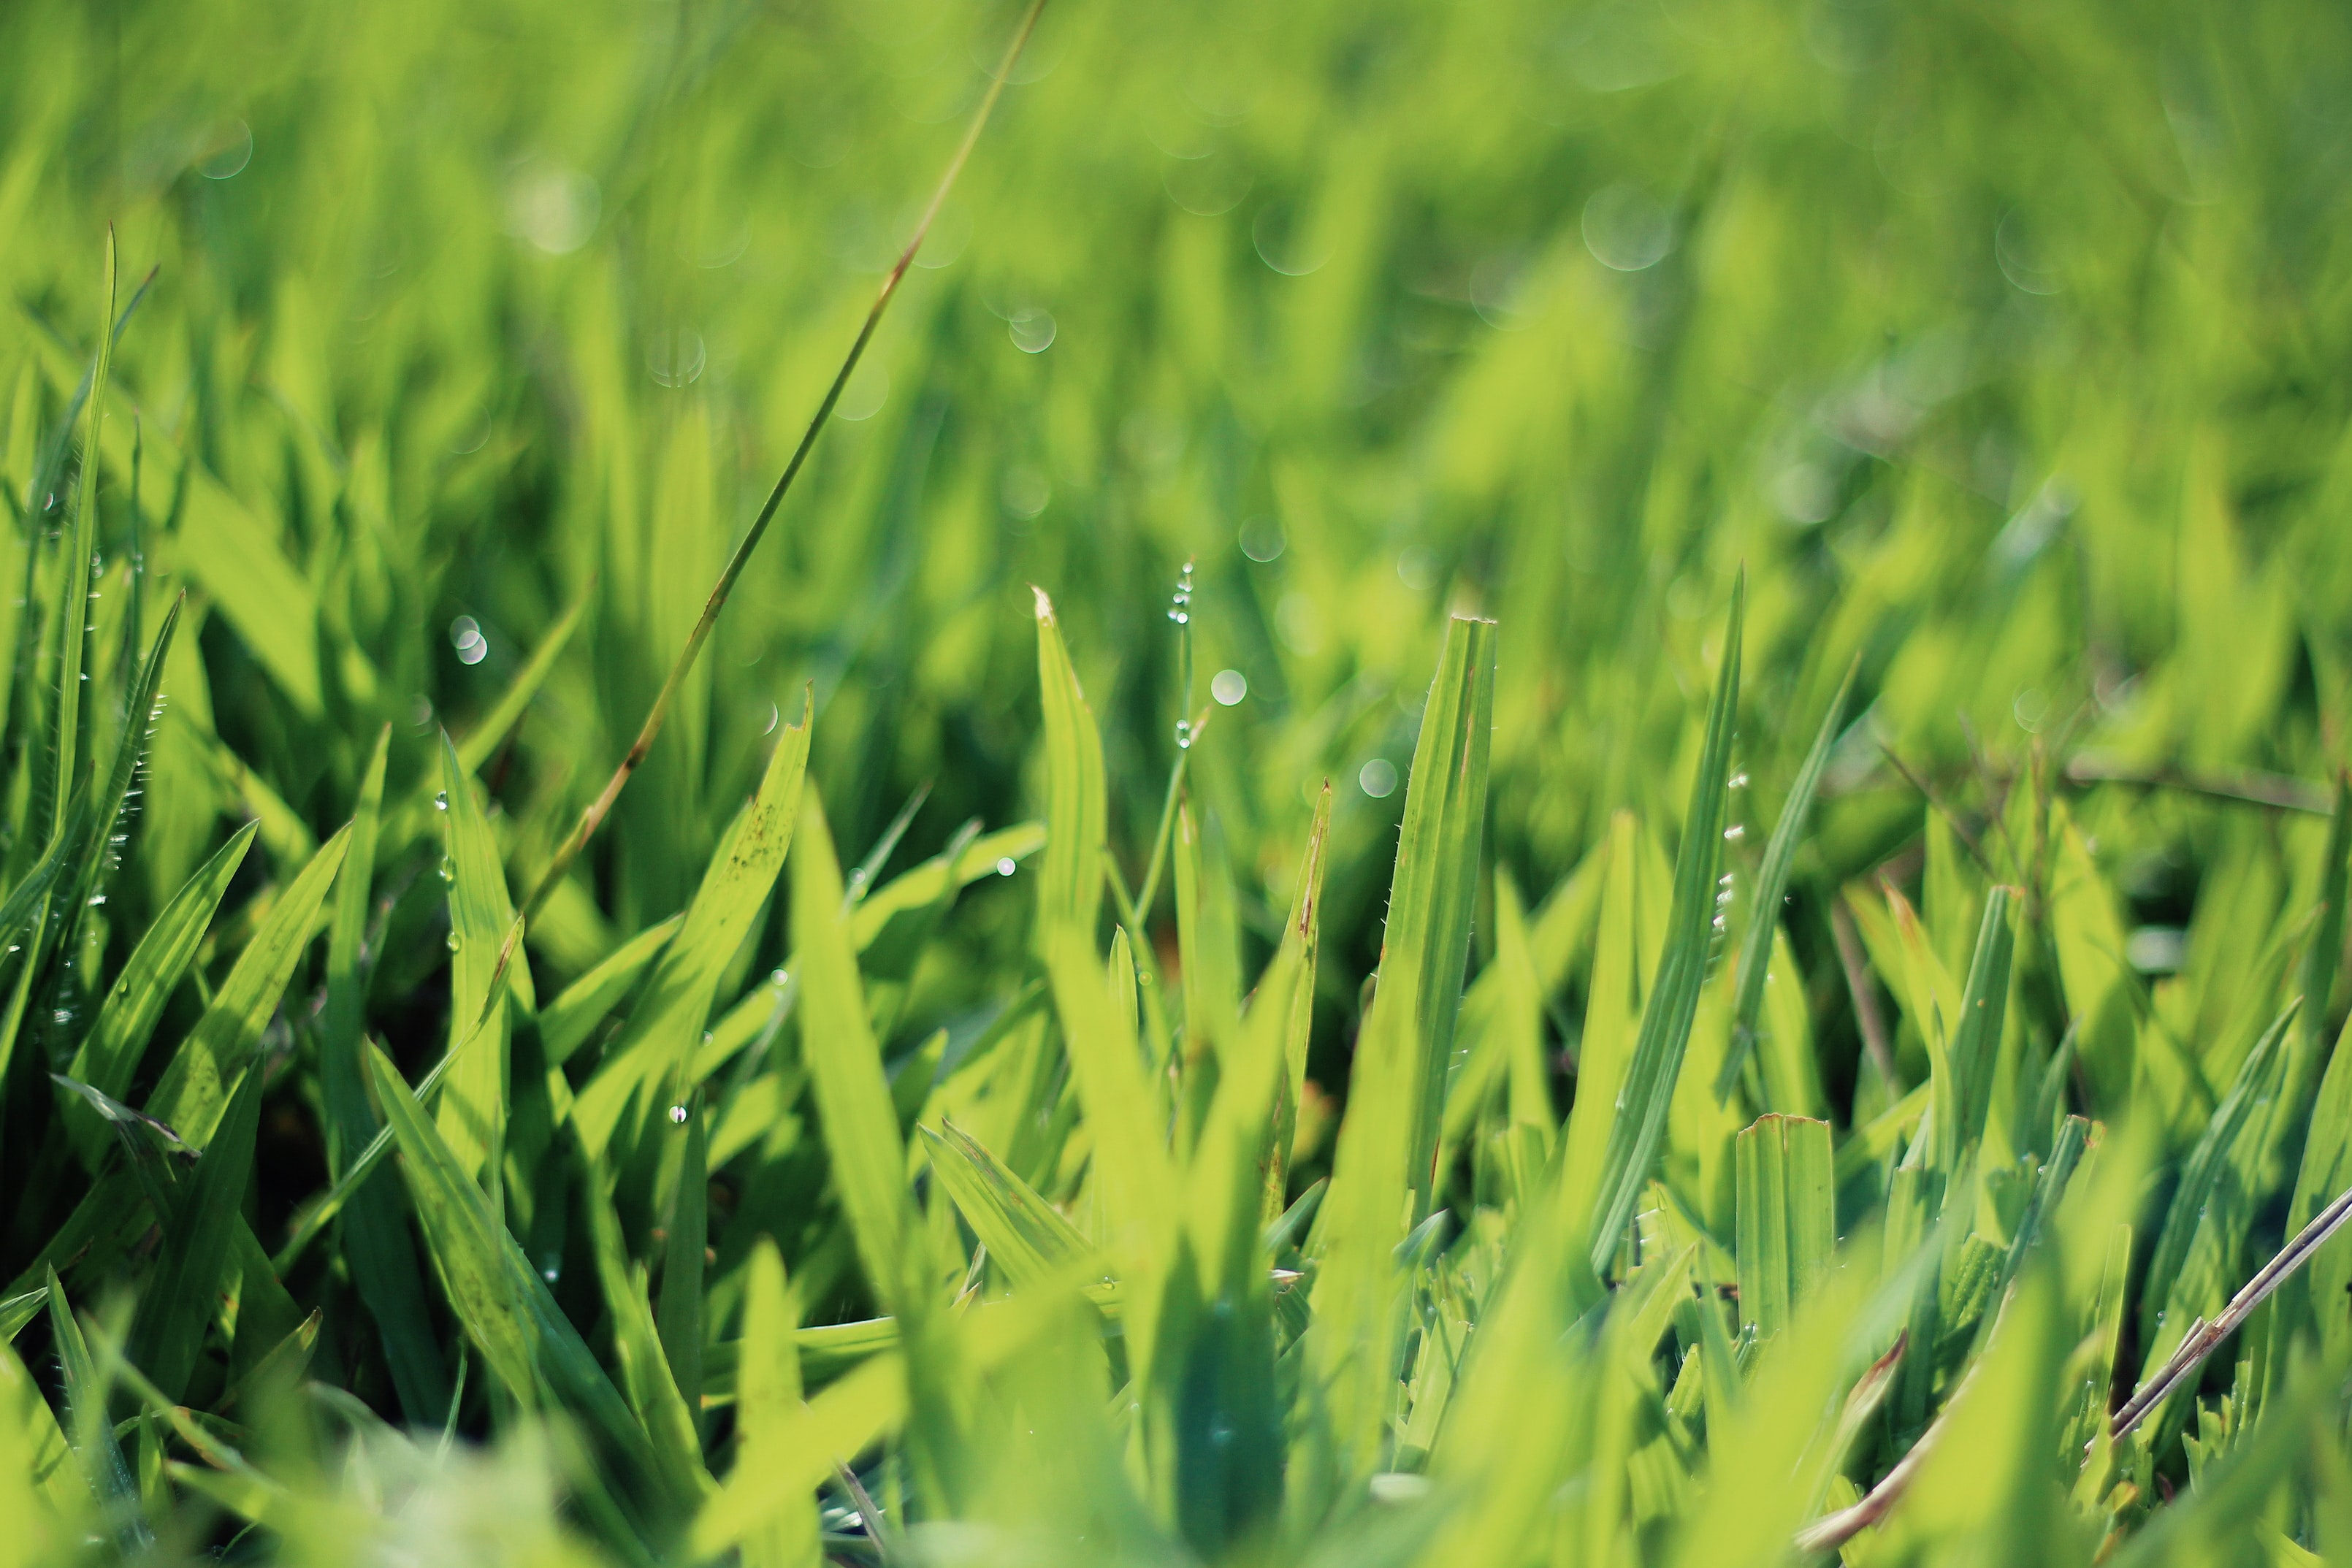 Green grass covered in dew in Guiricema